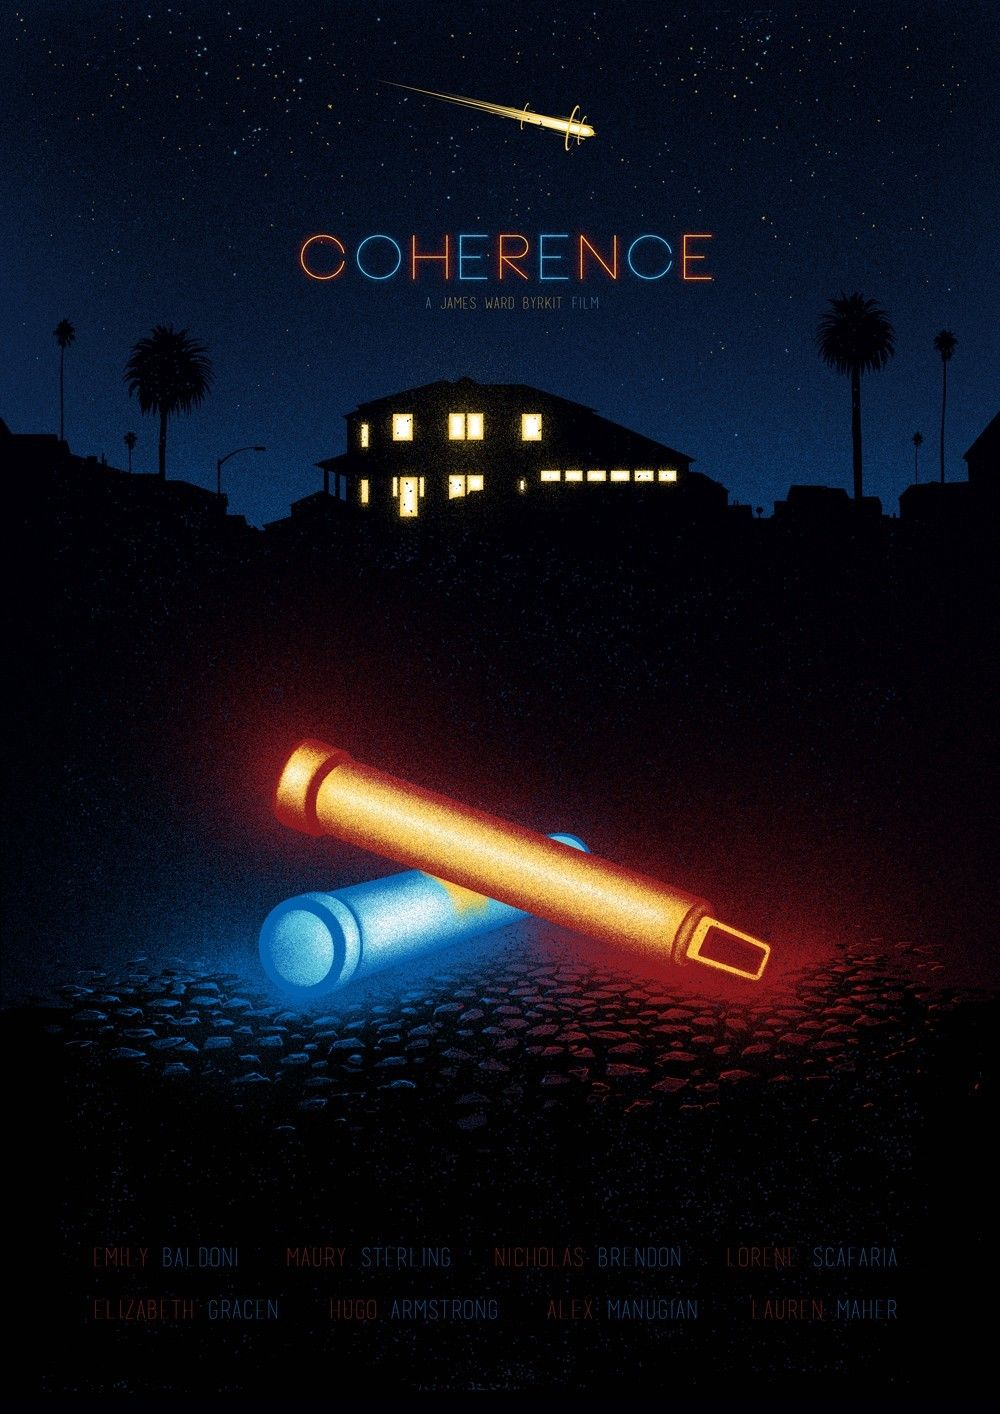 Coherence 2013 100x1414 Hd Wallpaper From Gallsource Com